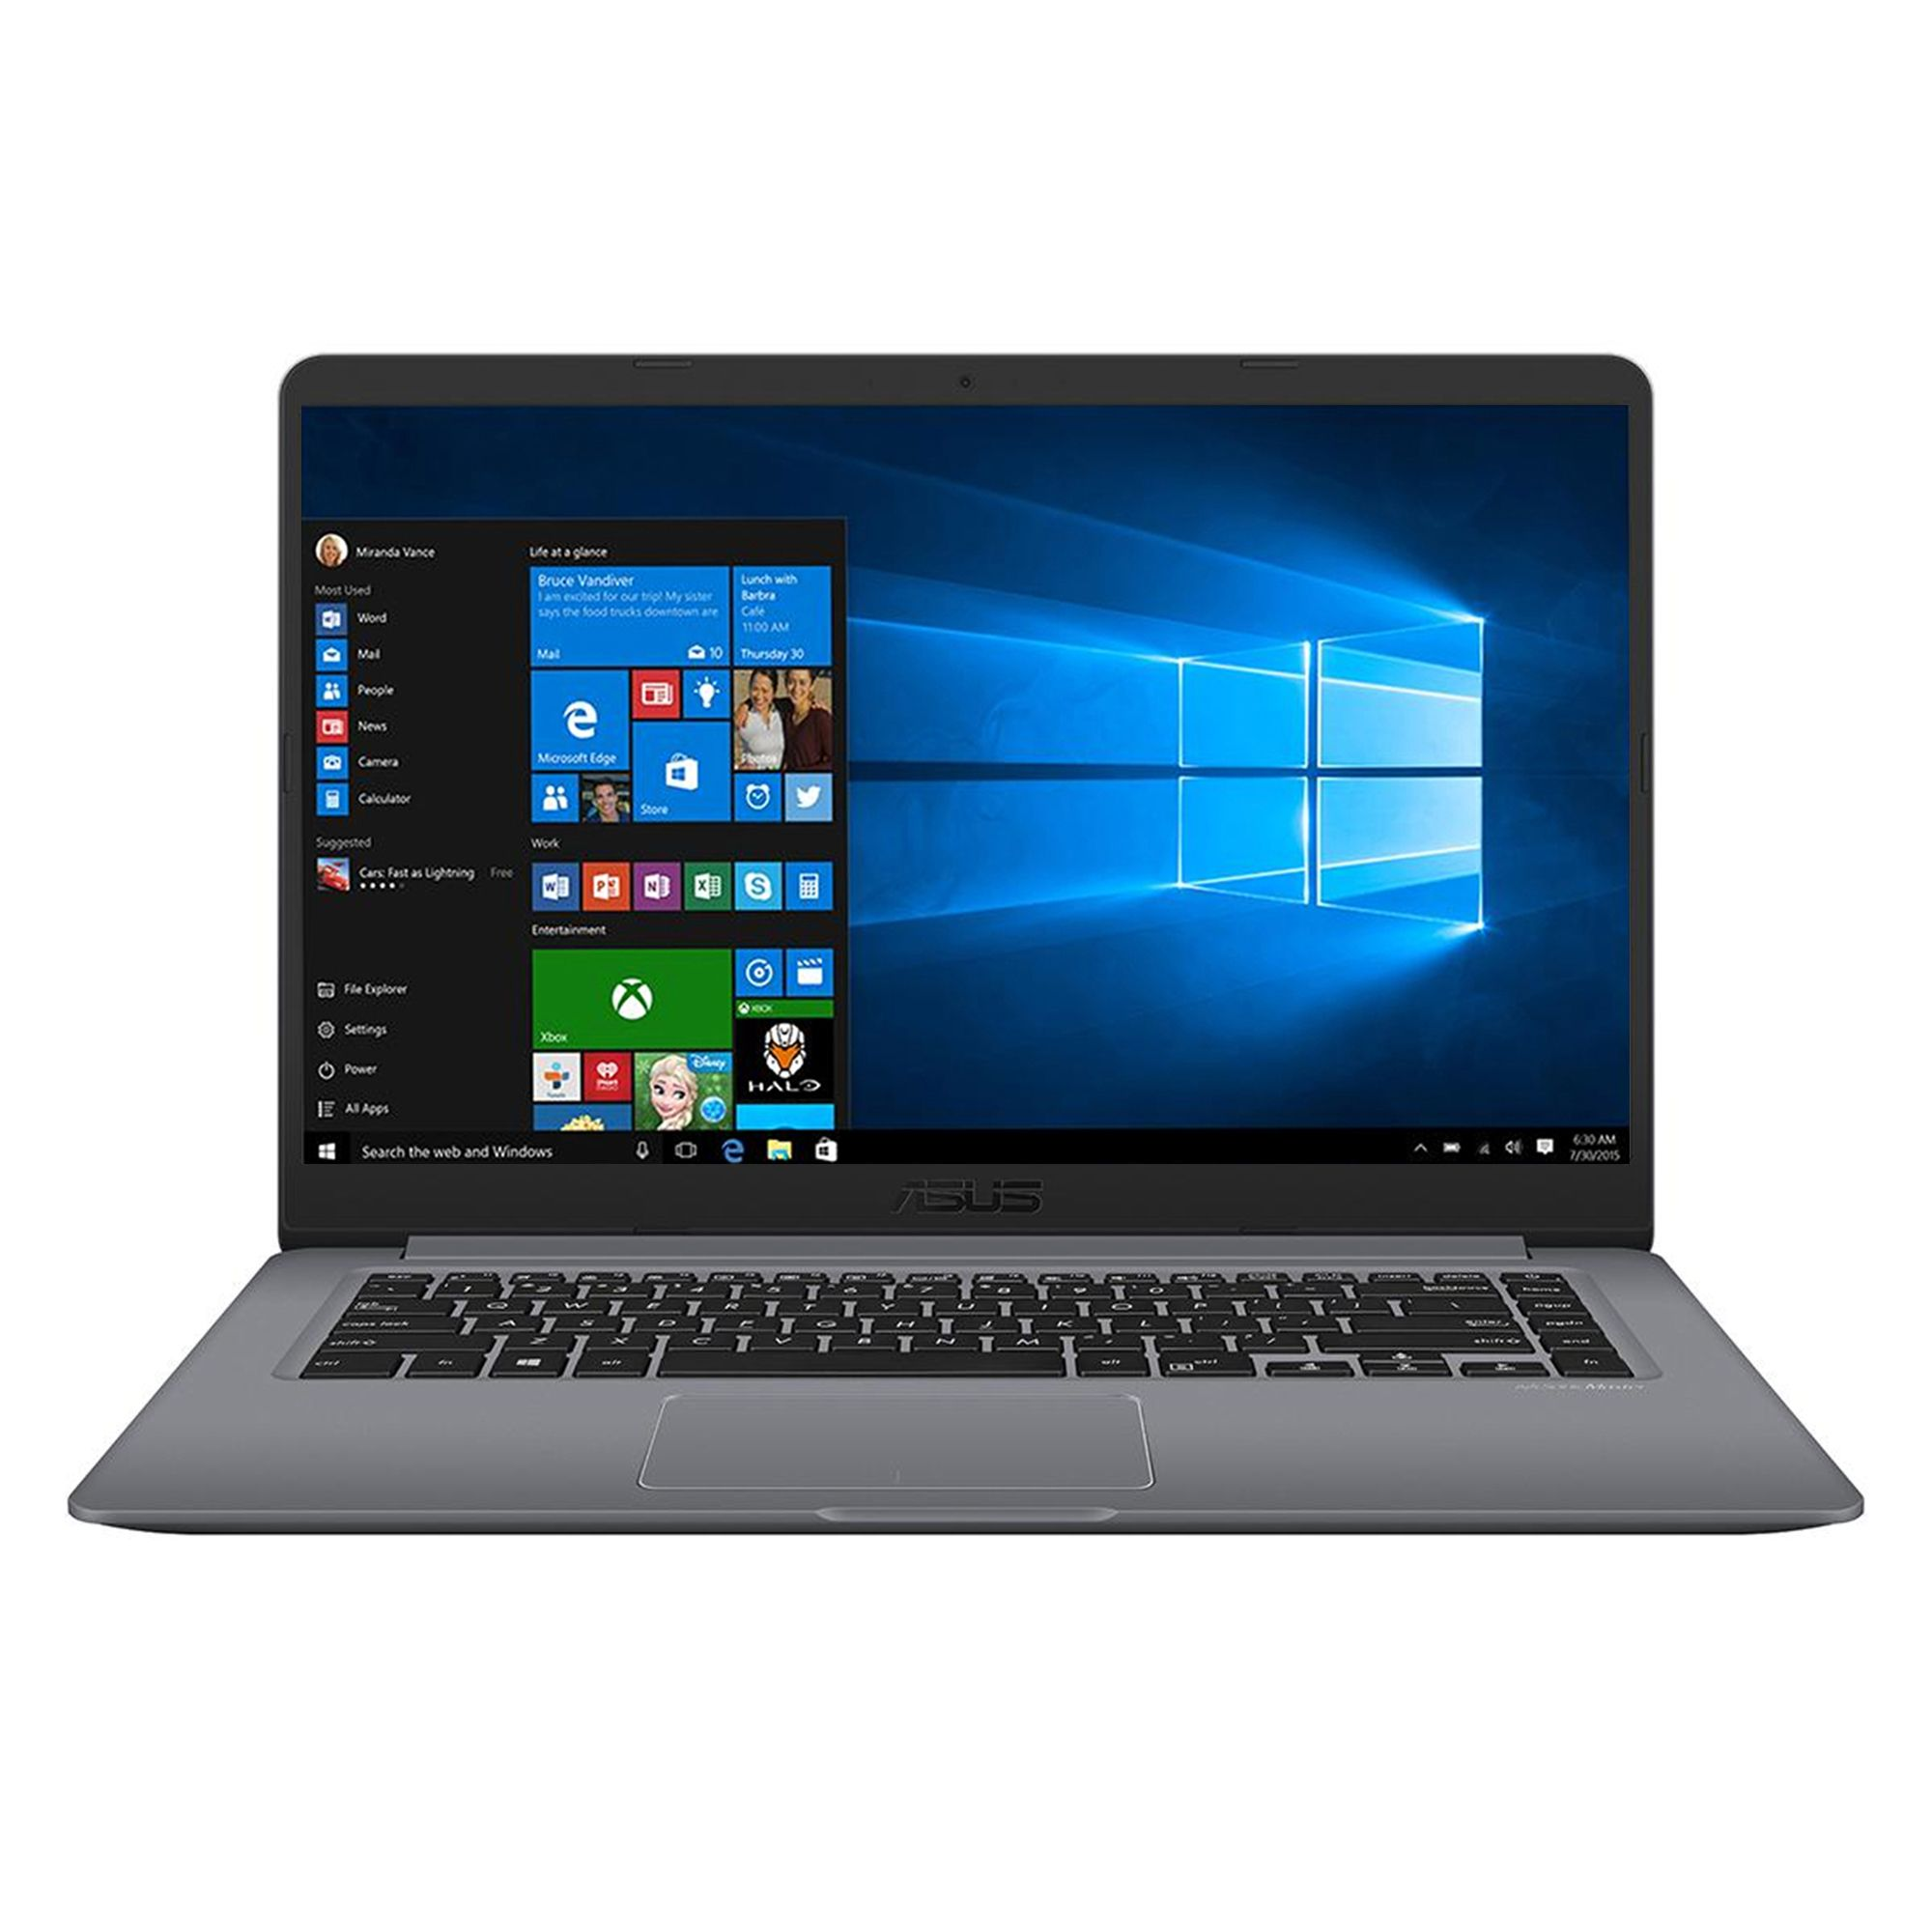 Notebook Asus VivoBook S15 S510UA 15.6 Full HD Intel Core i5-8250U RAM 4GB HDD 500GB Windows 10 Pro Gri